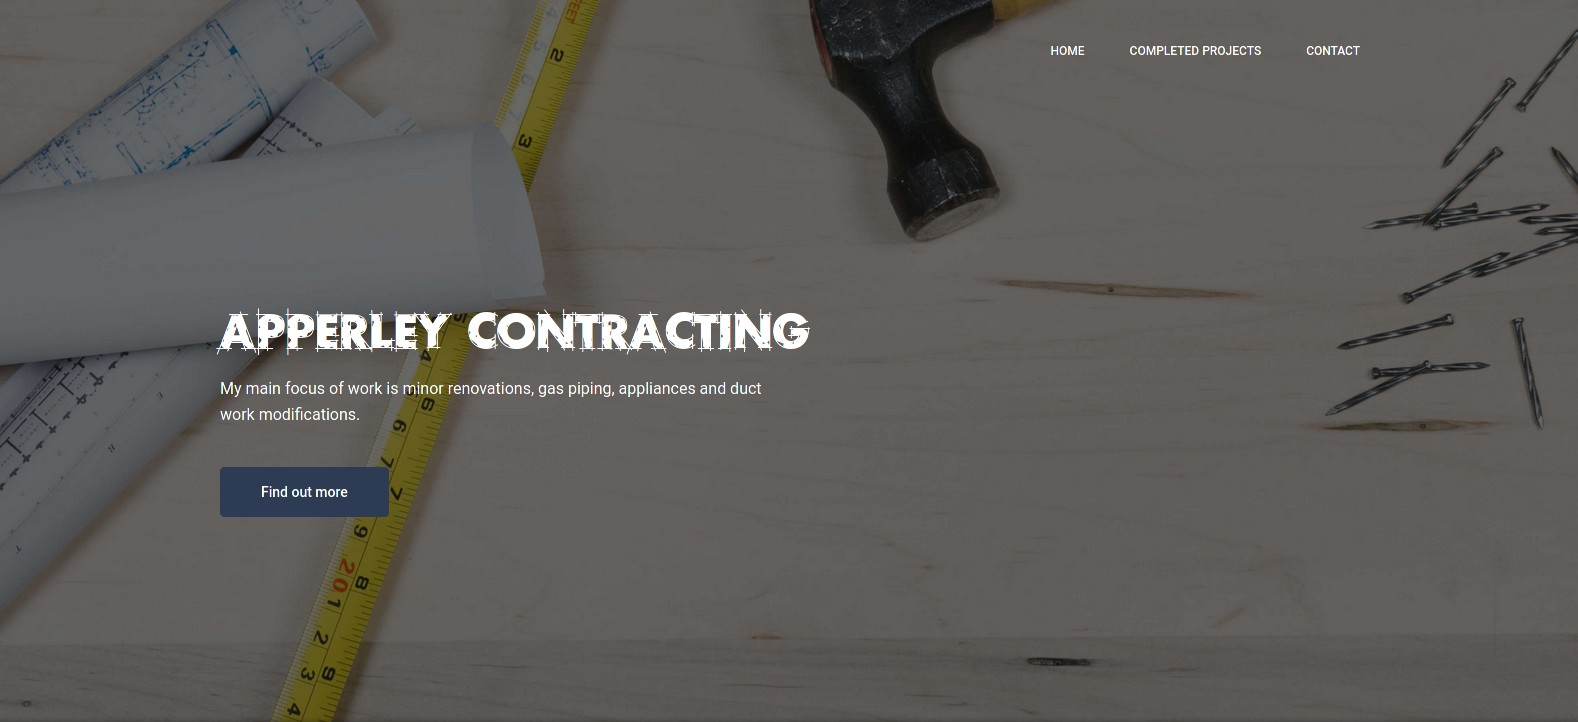 Apperley Contracting